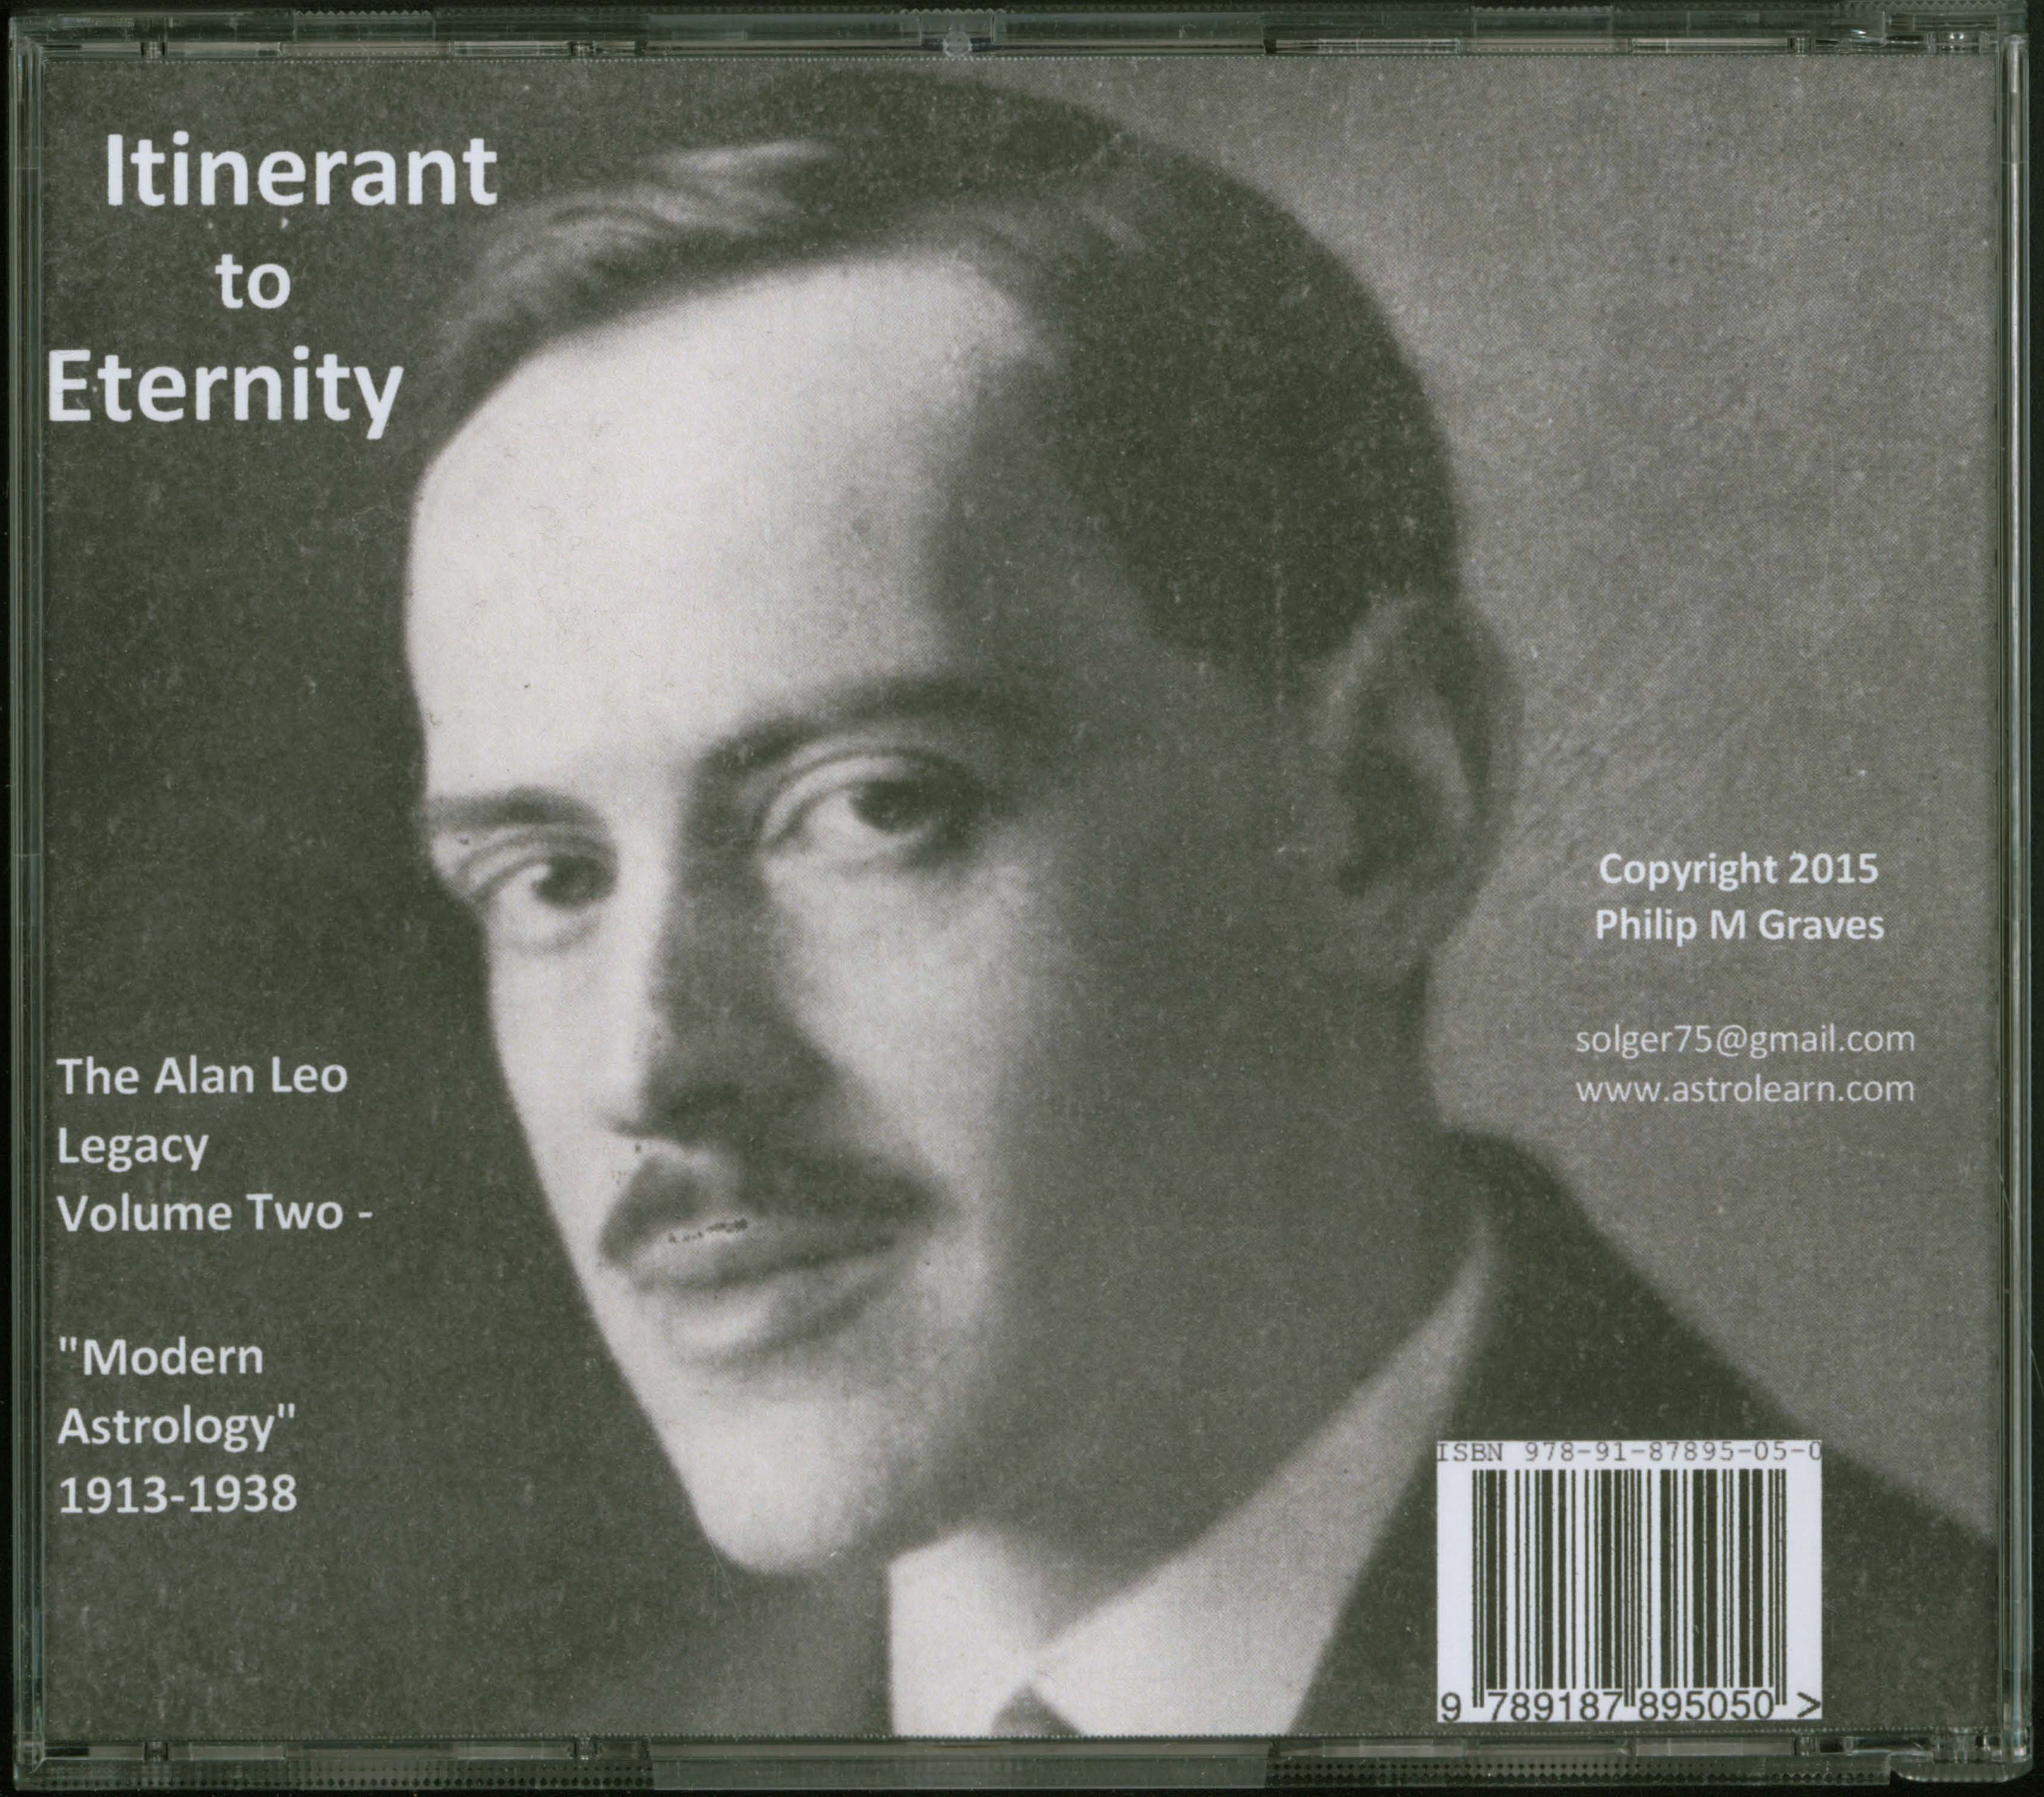 """Itinerant to Eternity: the Alan Leo Legacy Volume Two - """"Modern Astrology"""", 1913-1938, DVD, Rear Cover"""